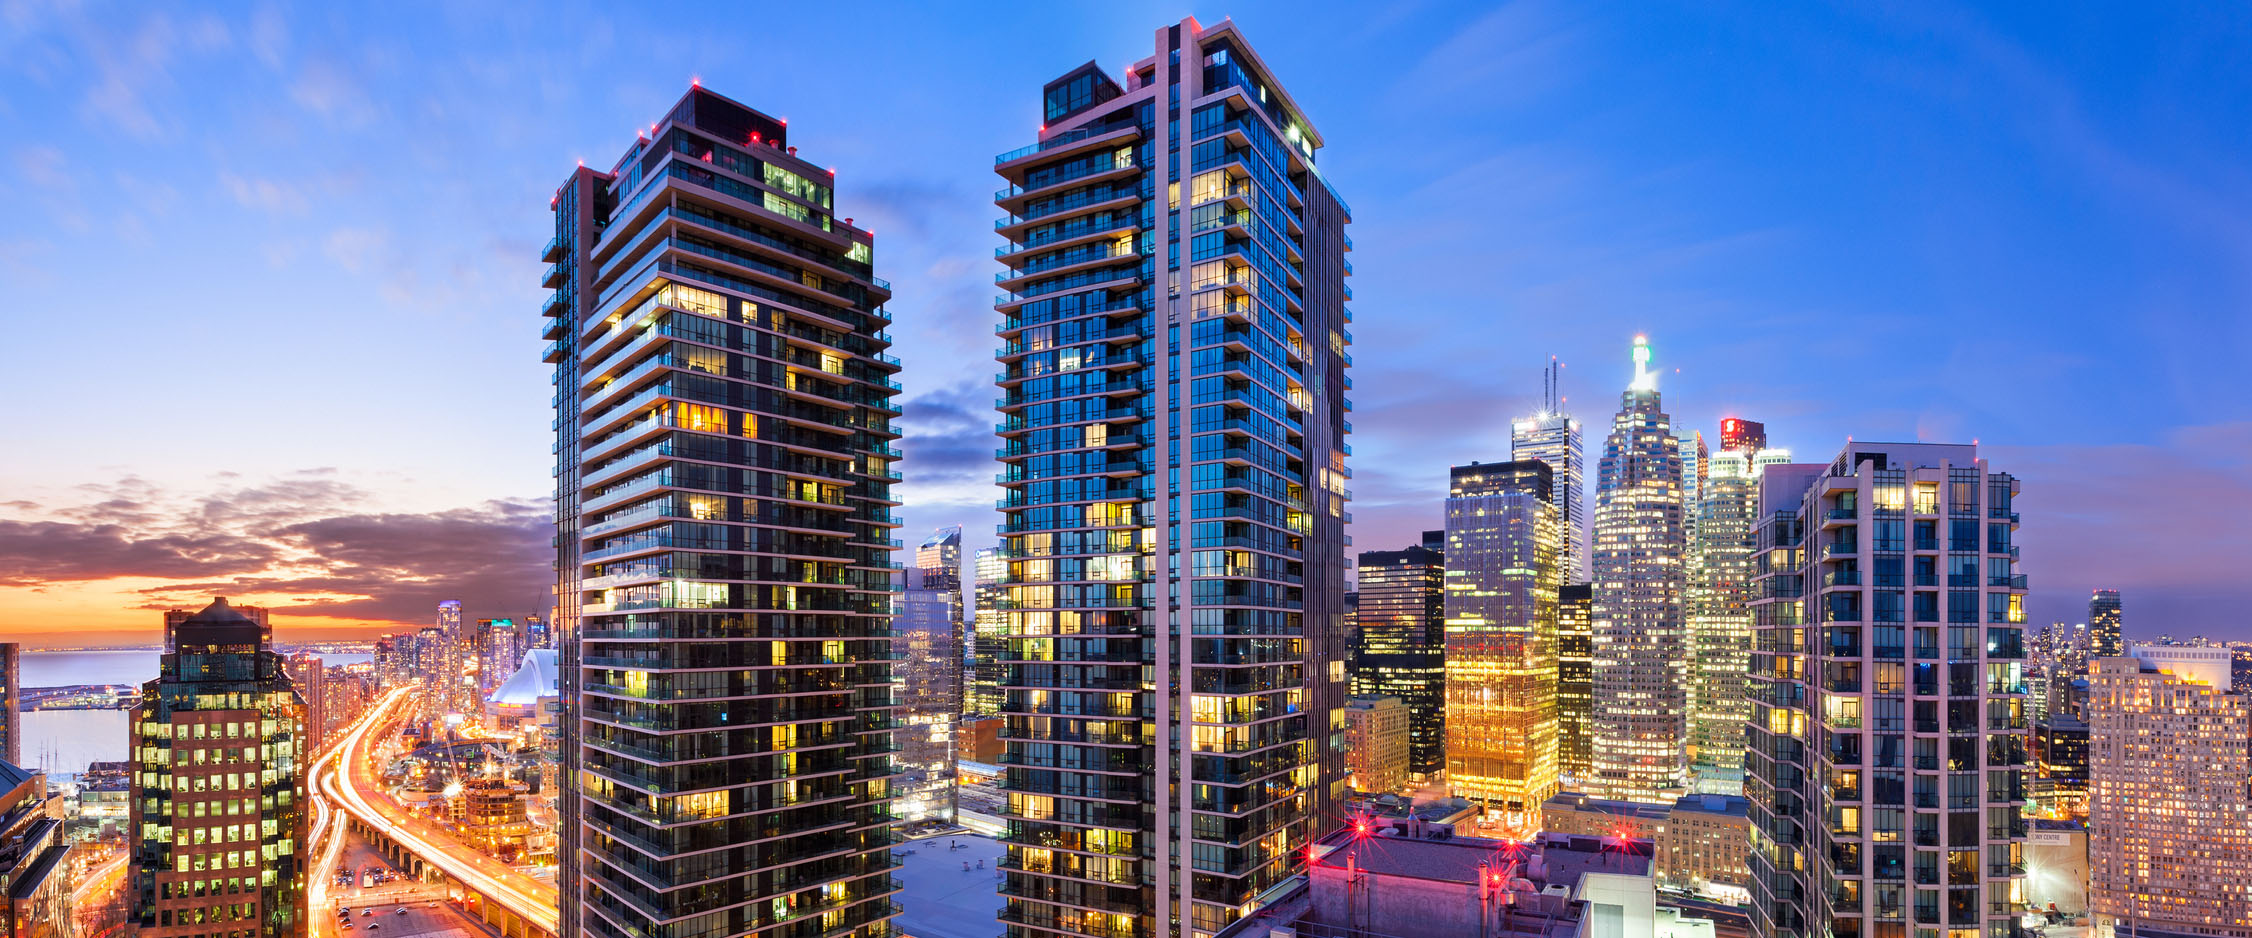 Long exposure panoramic photo of downtown Toronto cityscape and condominium towers at sunset and twilight.